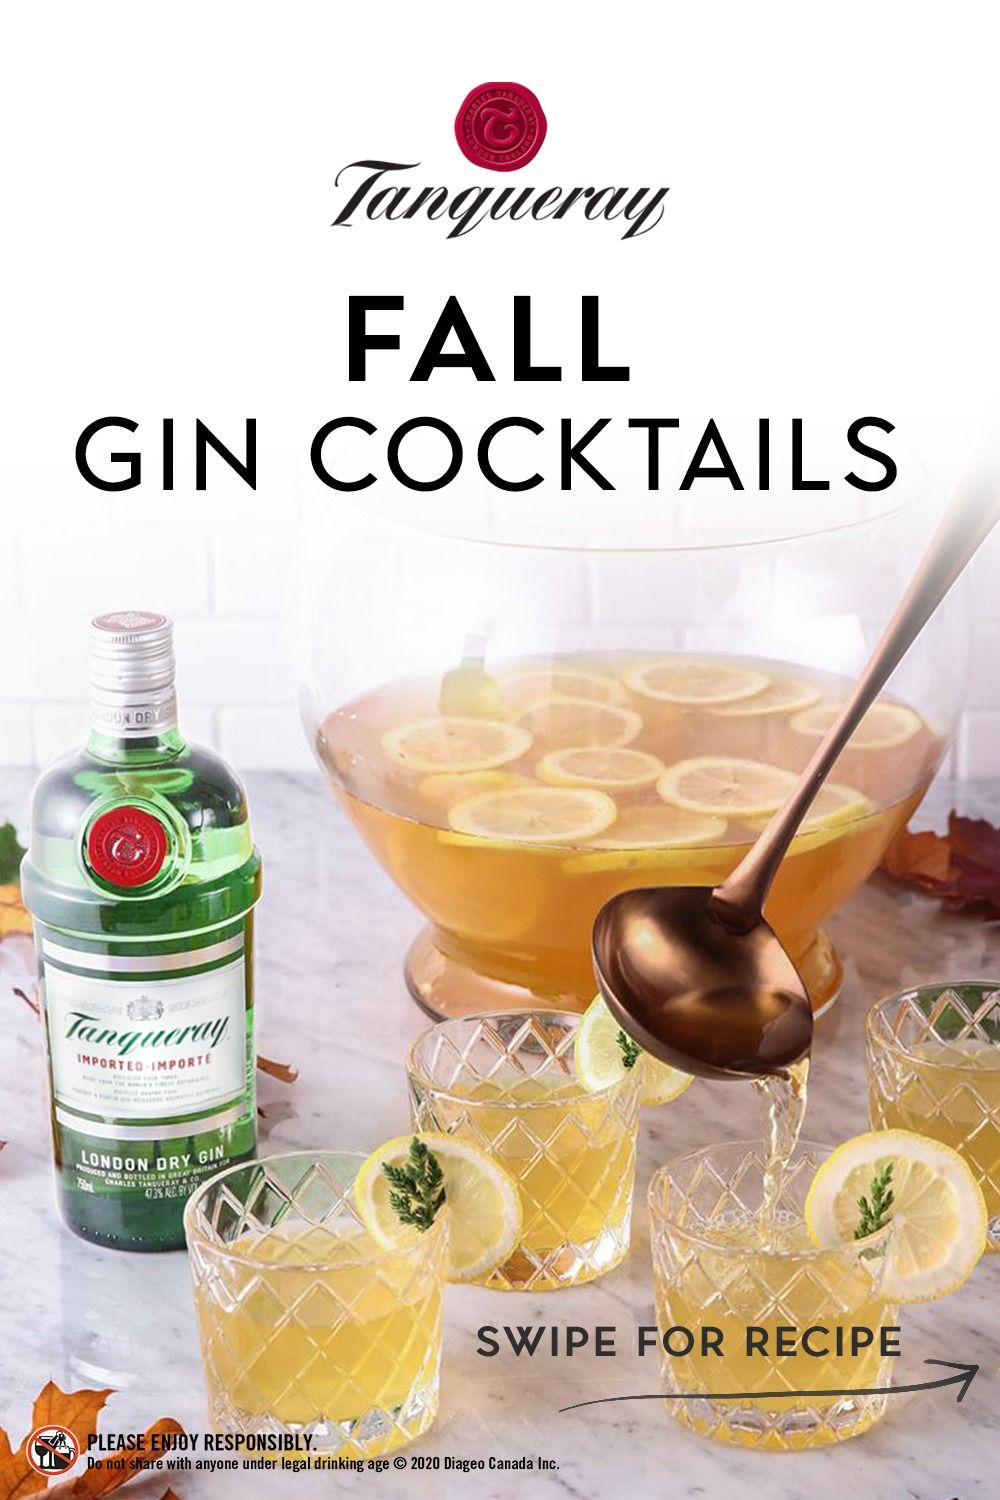 Tanqueray Fall Gin Cocktail Gin Cocktails Cocktail Drinks Recipes Gin Drink Recipes